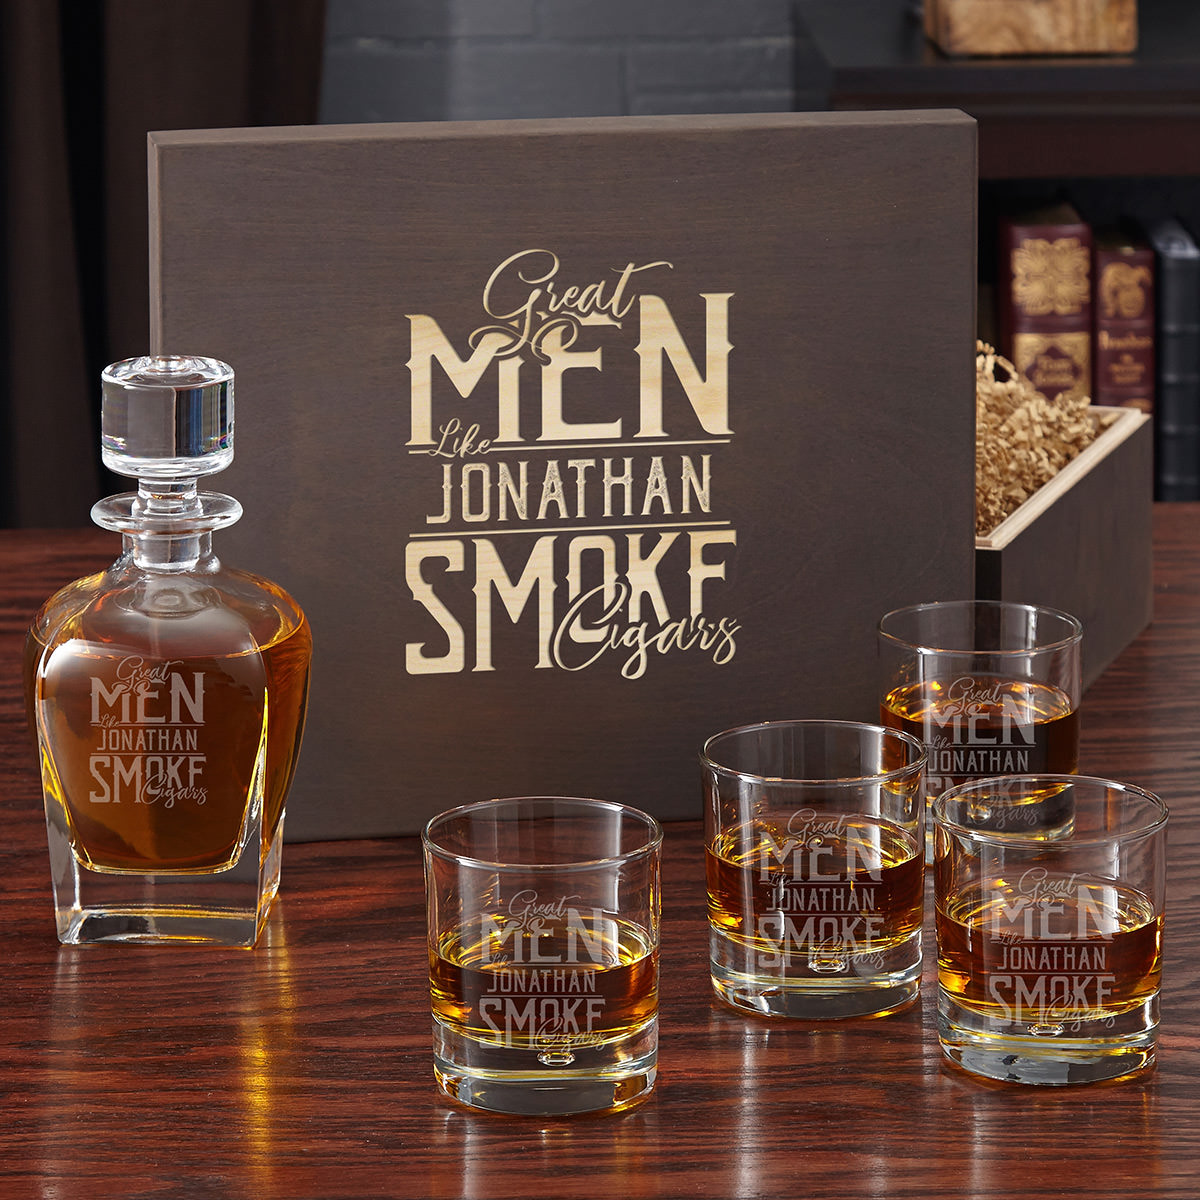 Great-Men-Smoke-Cigars-Engraved-Liquor-Decanter-and-Scotch-Glass-Box-Set